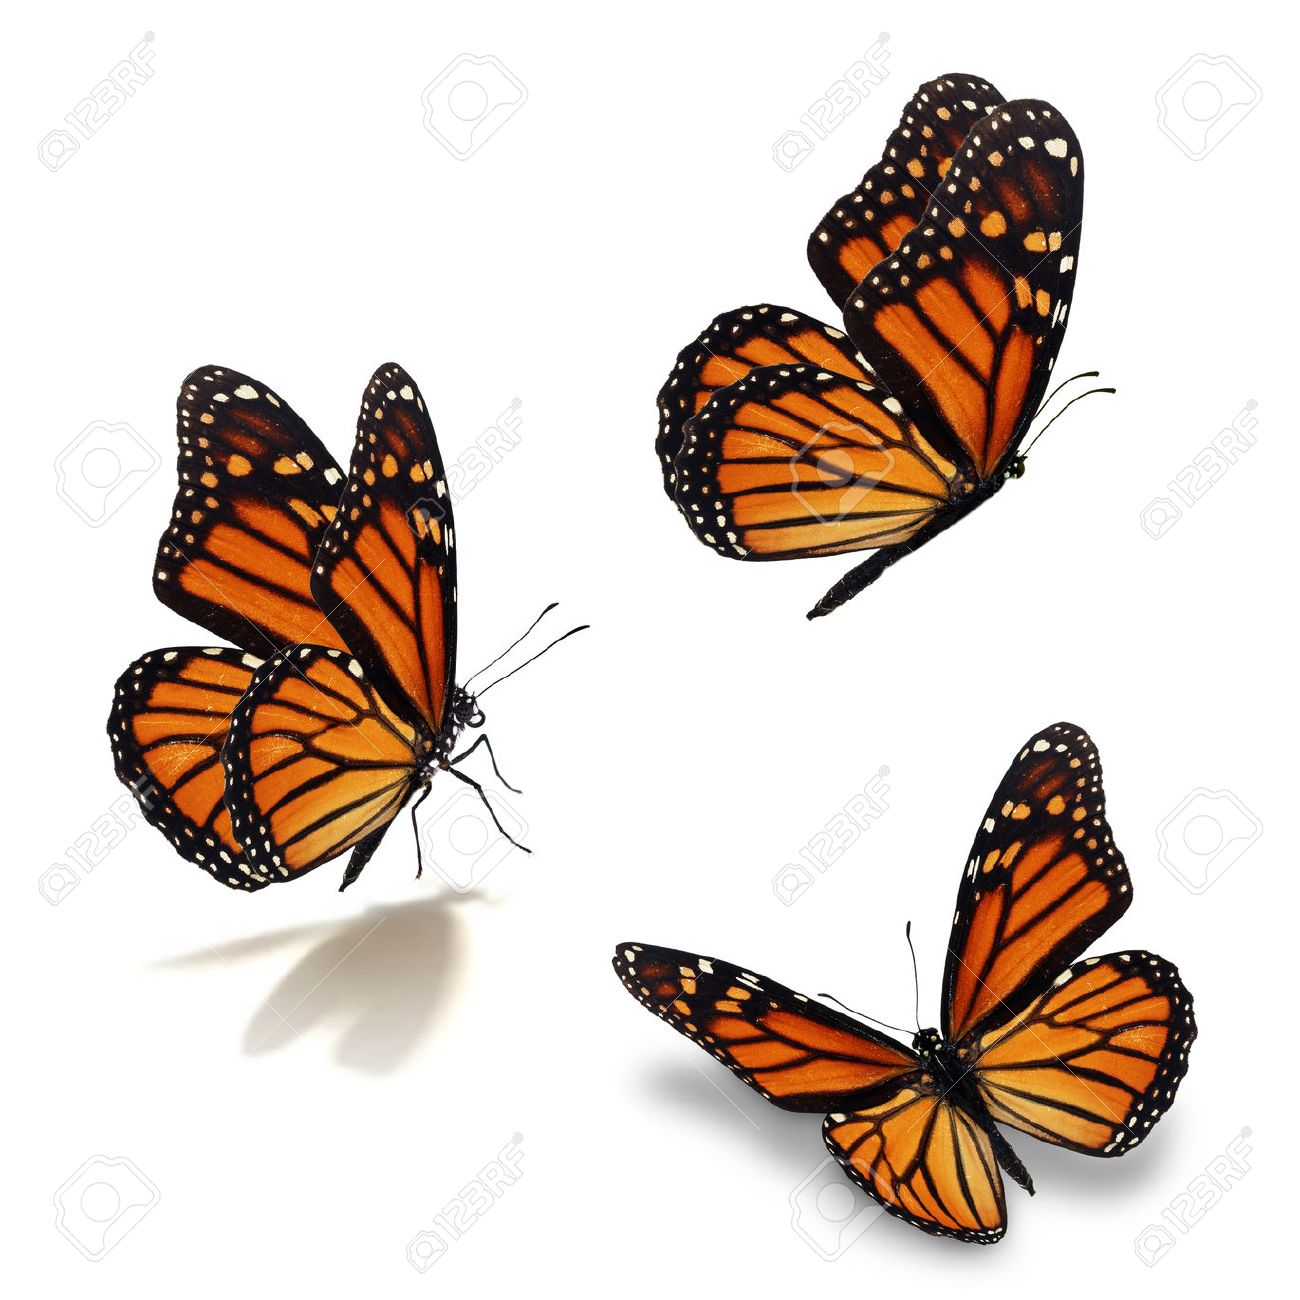 Beautiful three monarch butterfly, isolated on white background - 53632231